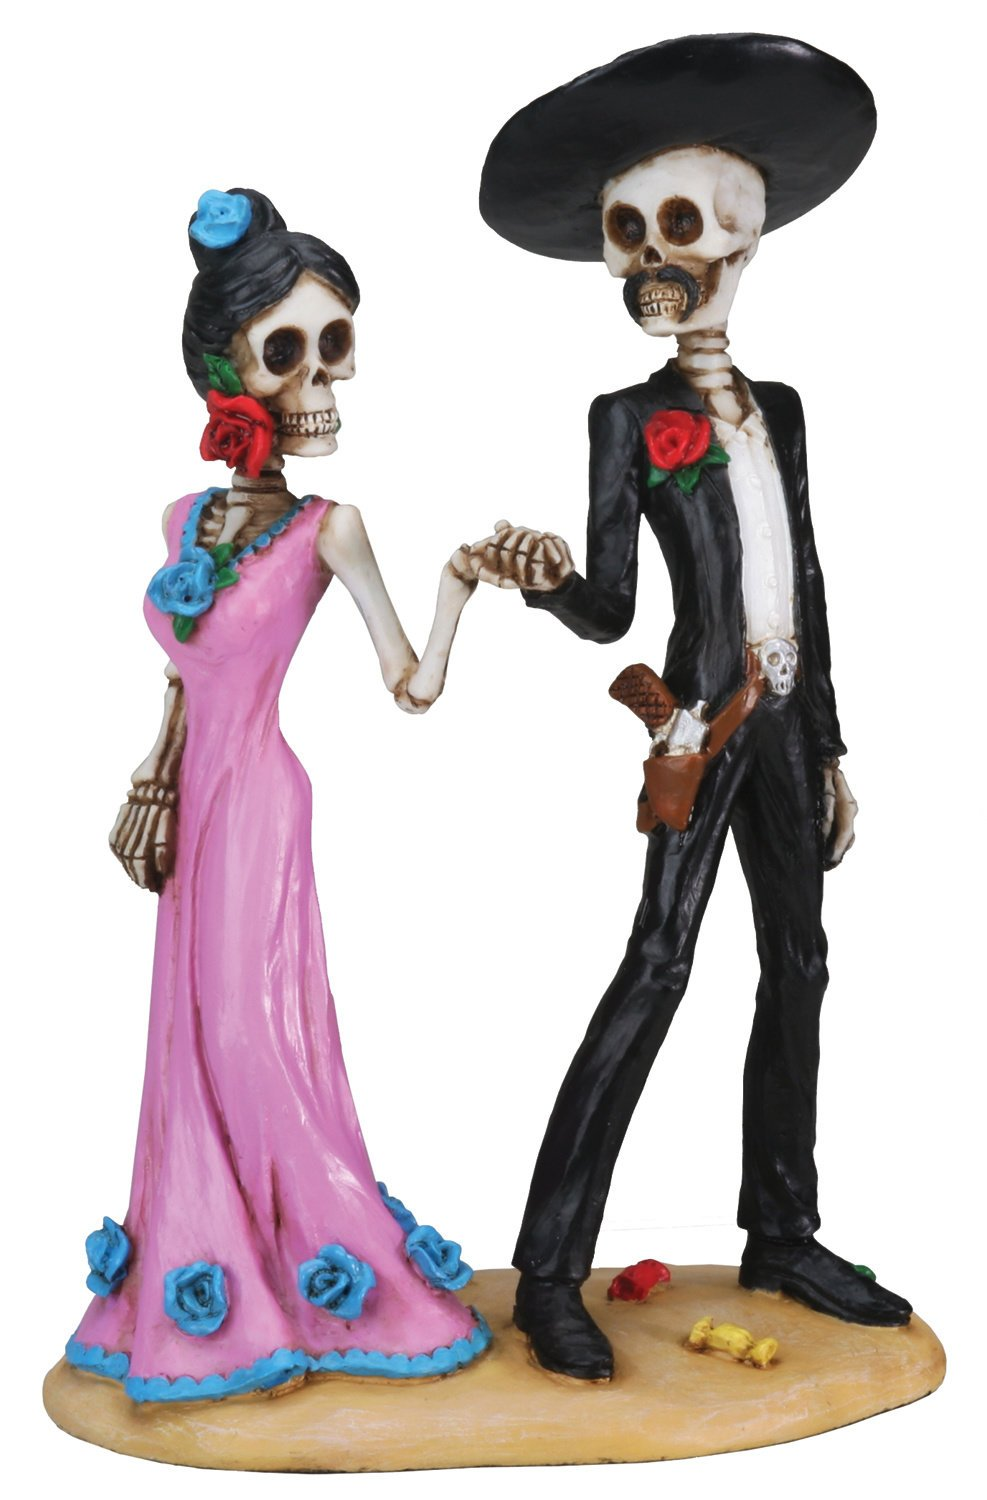 Amazon.com: Day of The Dead Skeleton Couple Holding Hands Figurine ...